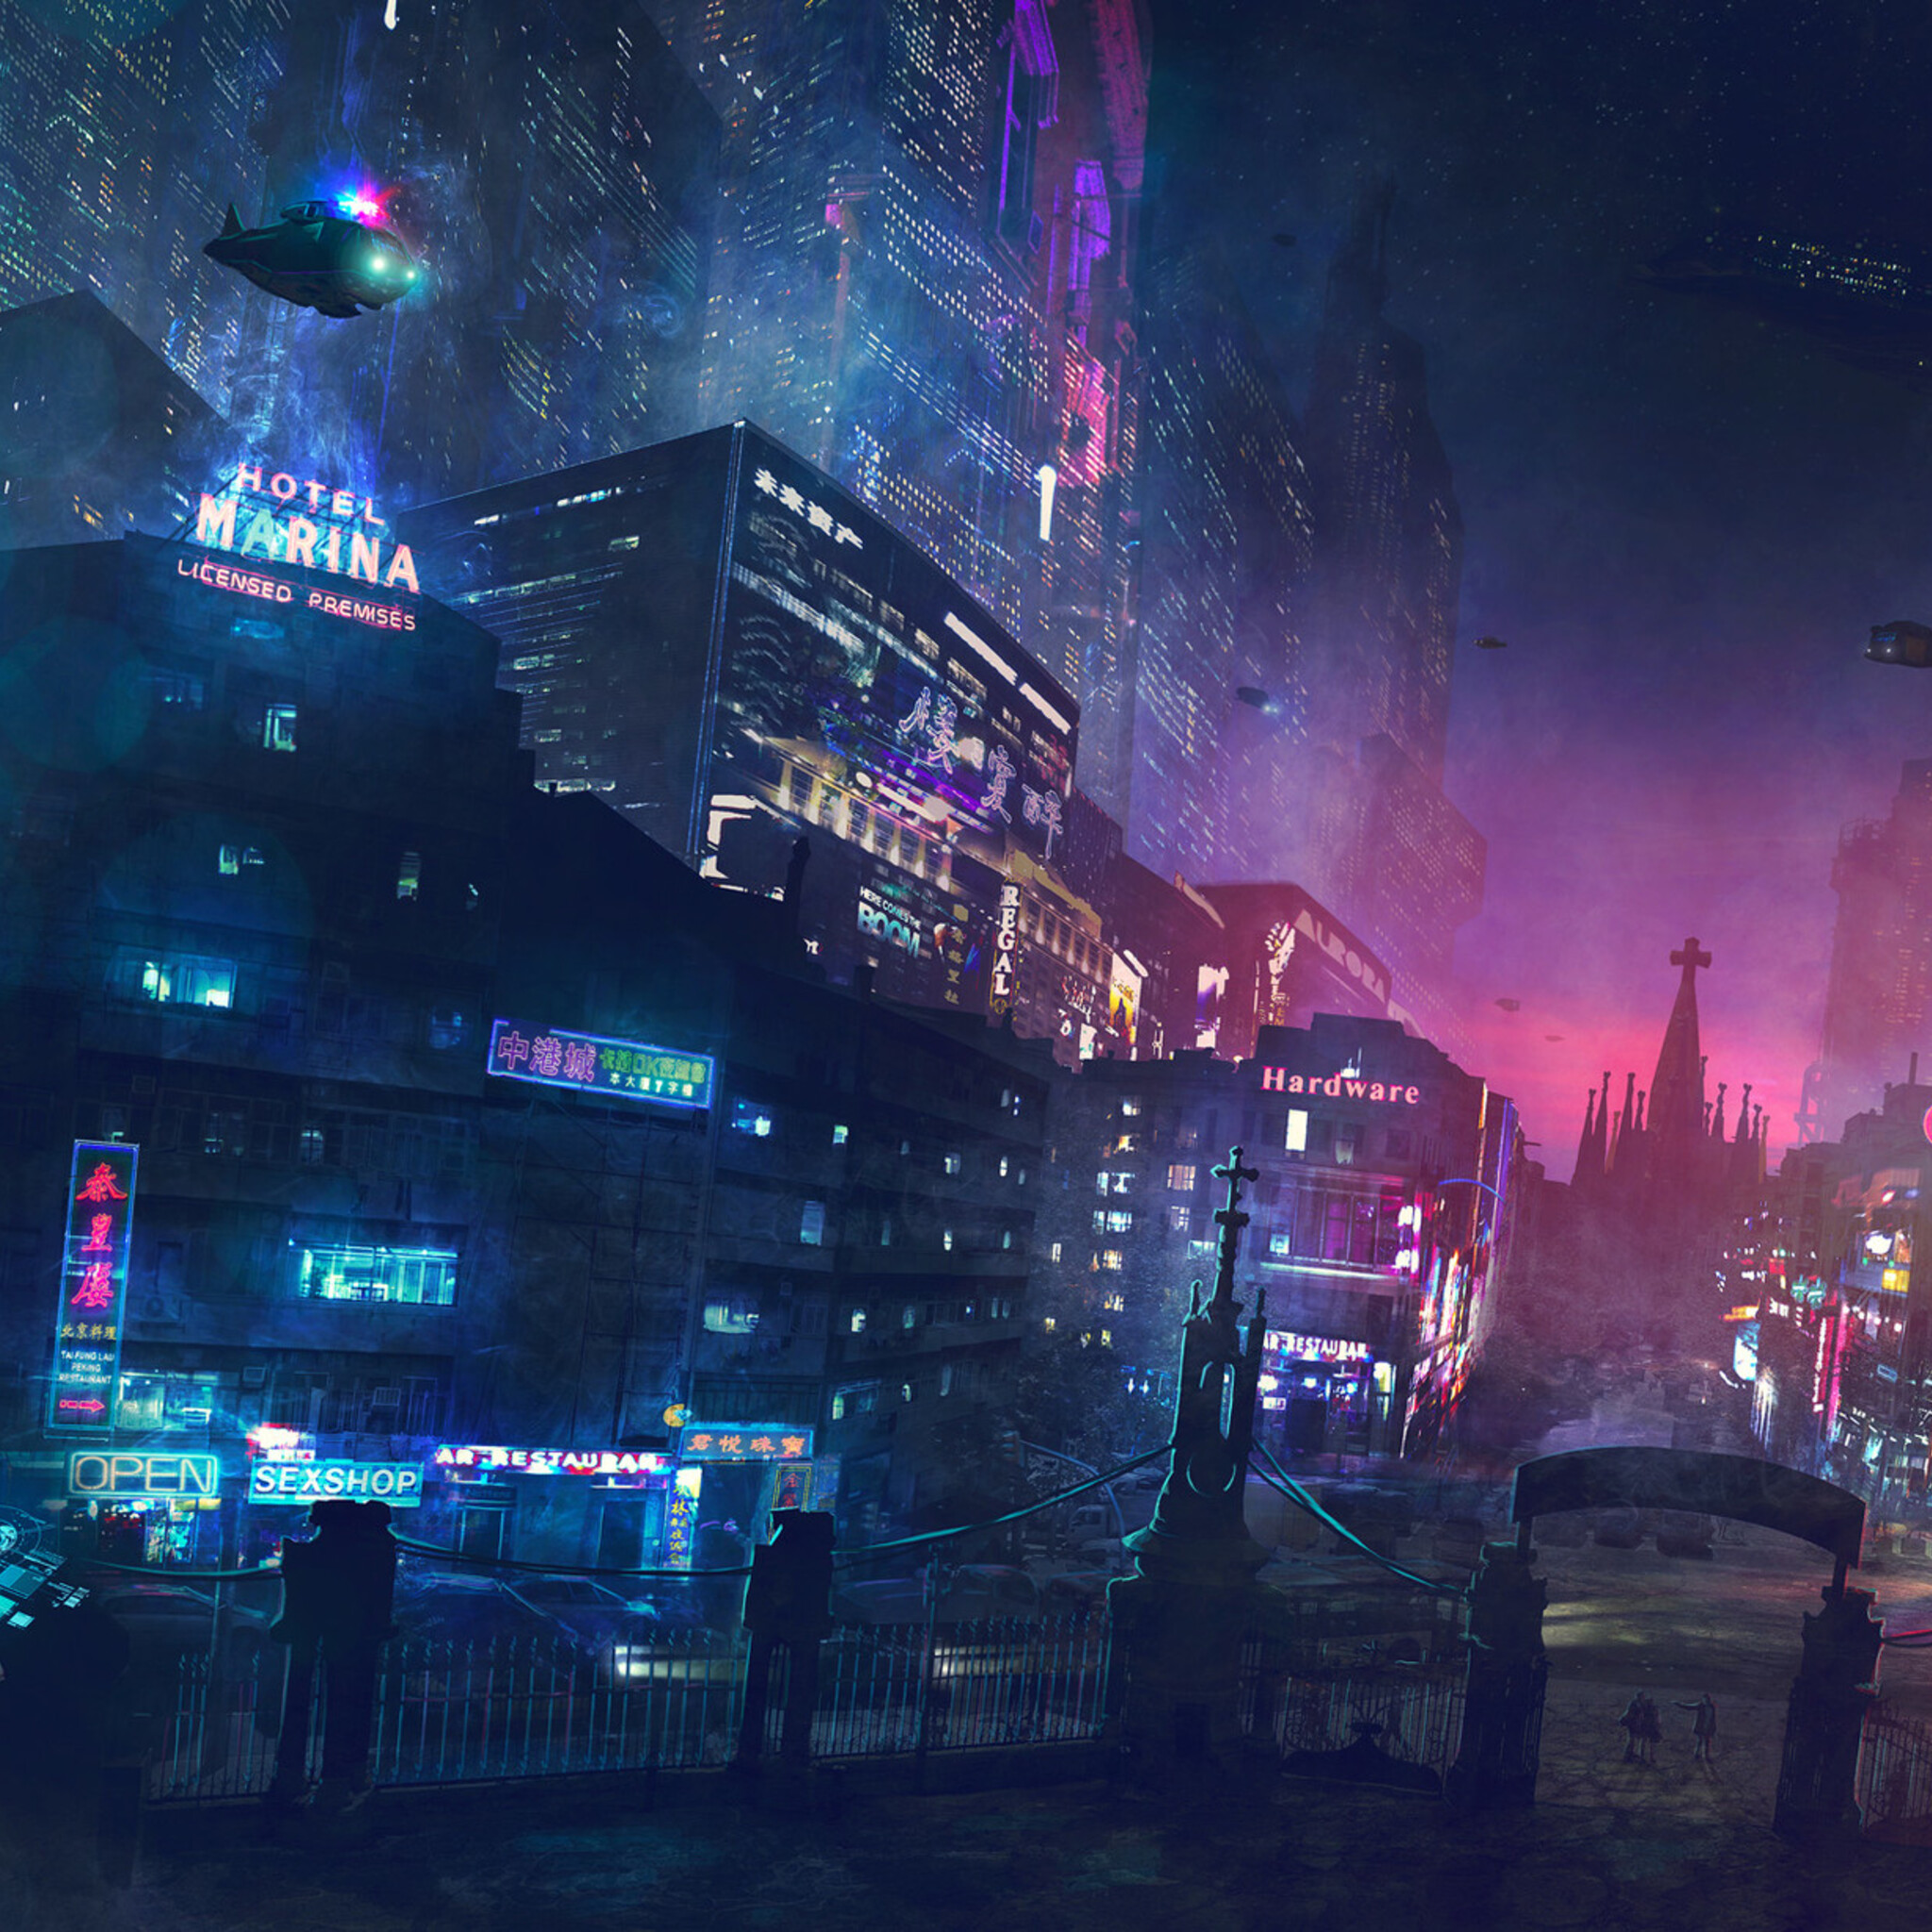 2048x2048 Cyberpunk Artwork Ipad Air HD 4k Wallpapers, Images, Backgrounds, Photos and Pictures